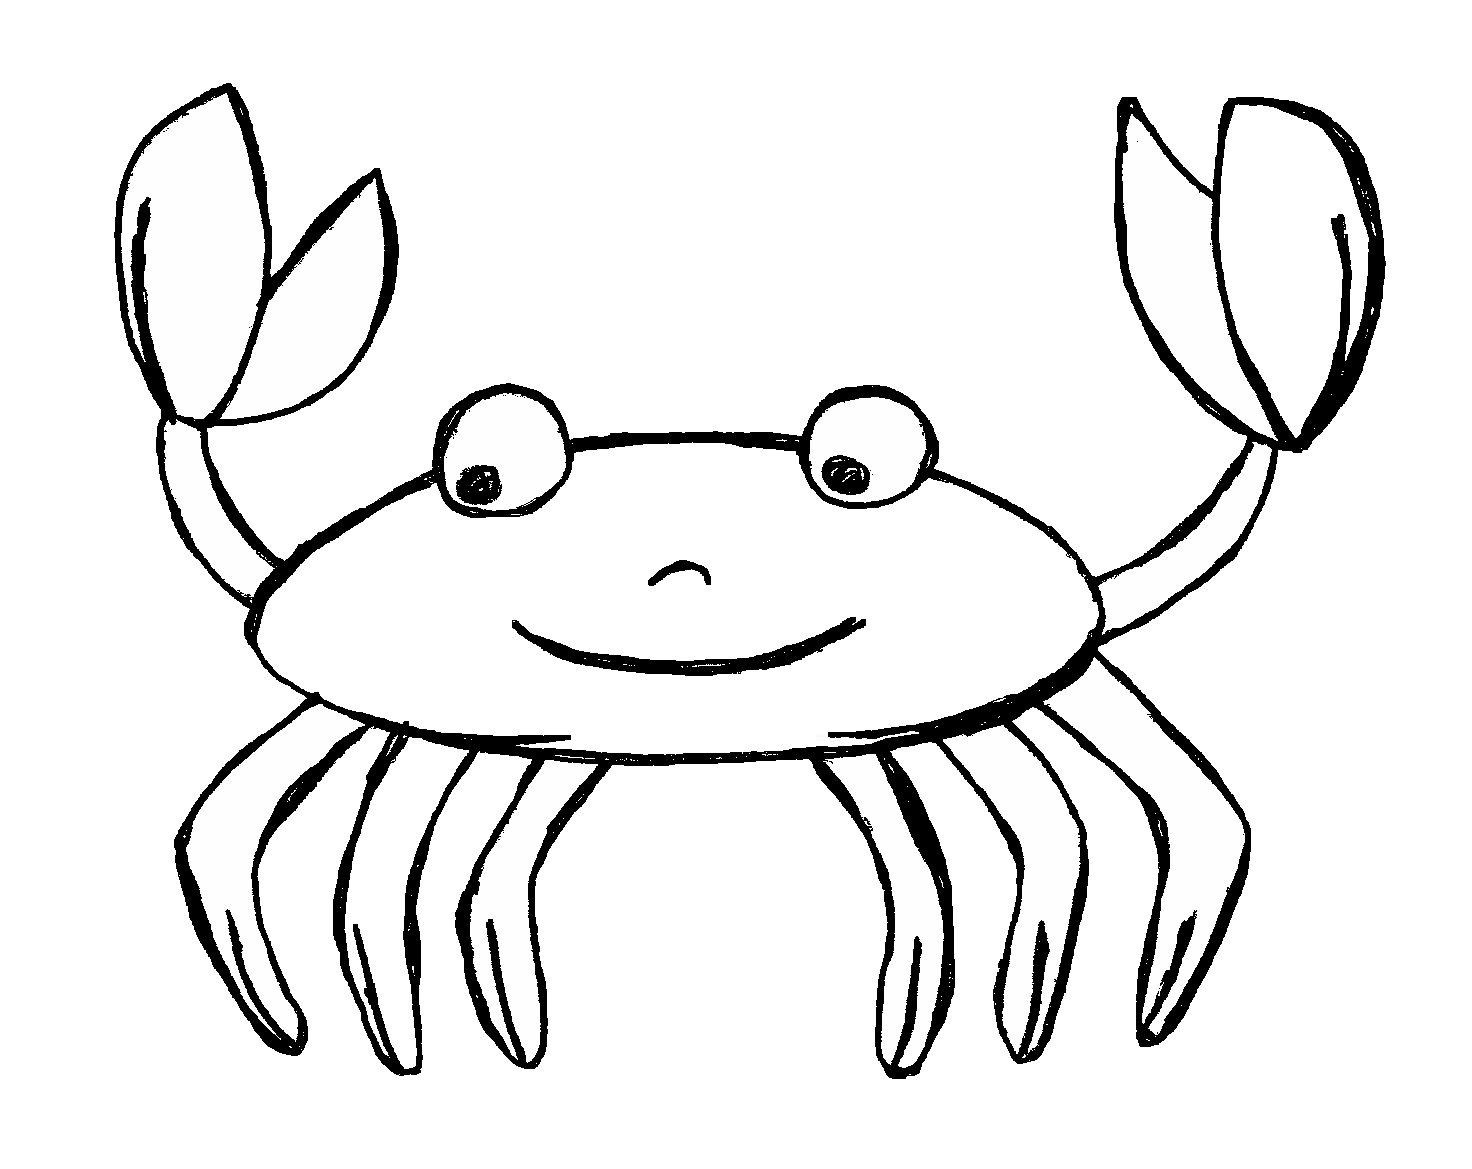 jpg transparent download Stingray clipart black and white. Drawing at getdrawings com